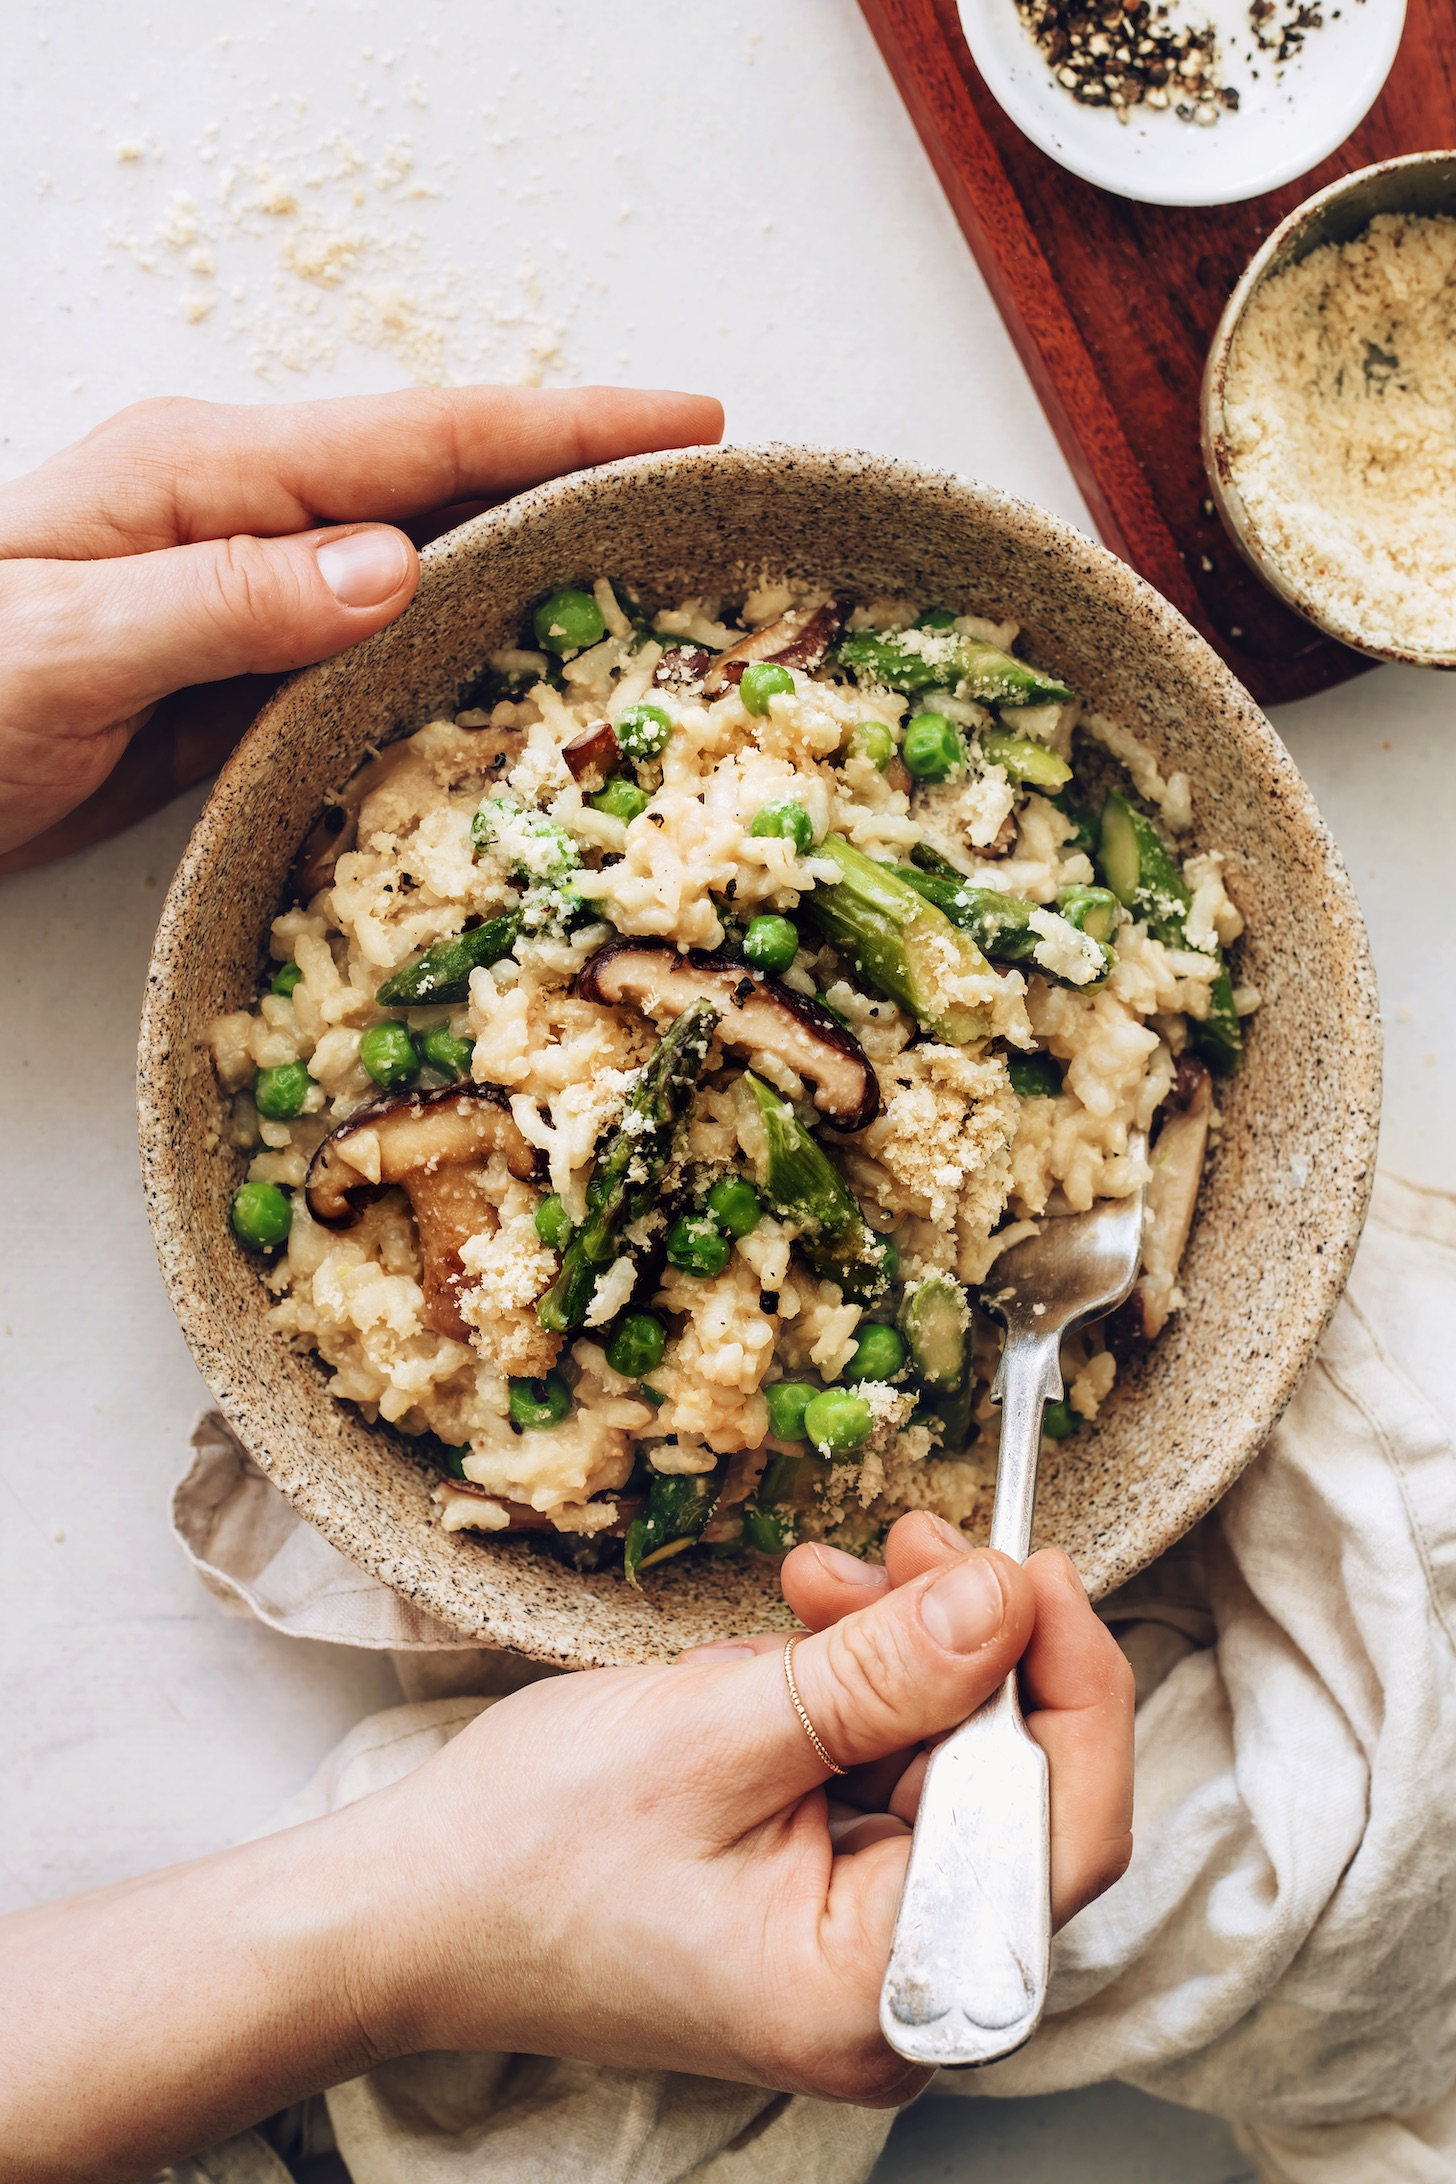 Bowl of spring vegetable risotto seasoned with vegan parmesan and miso